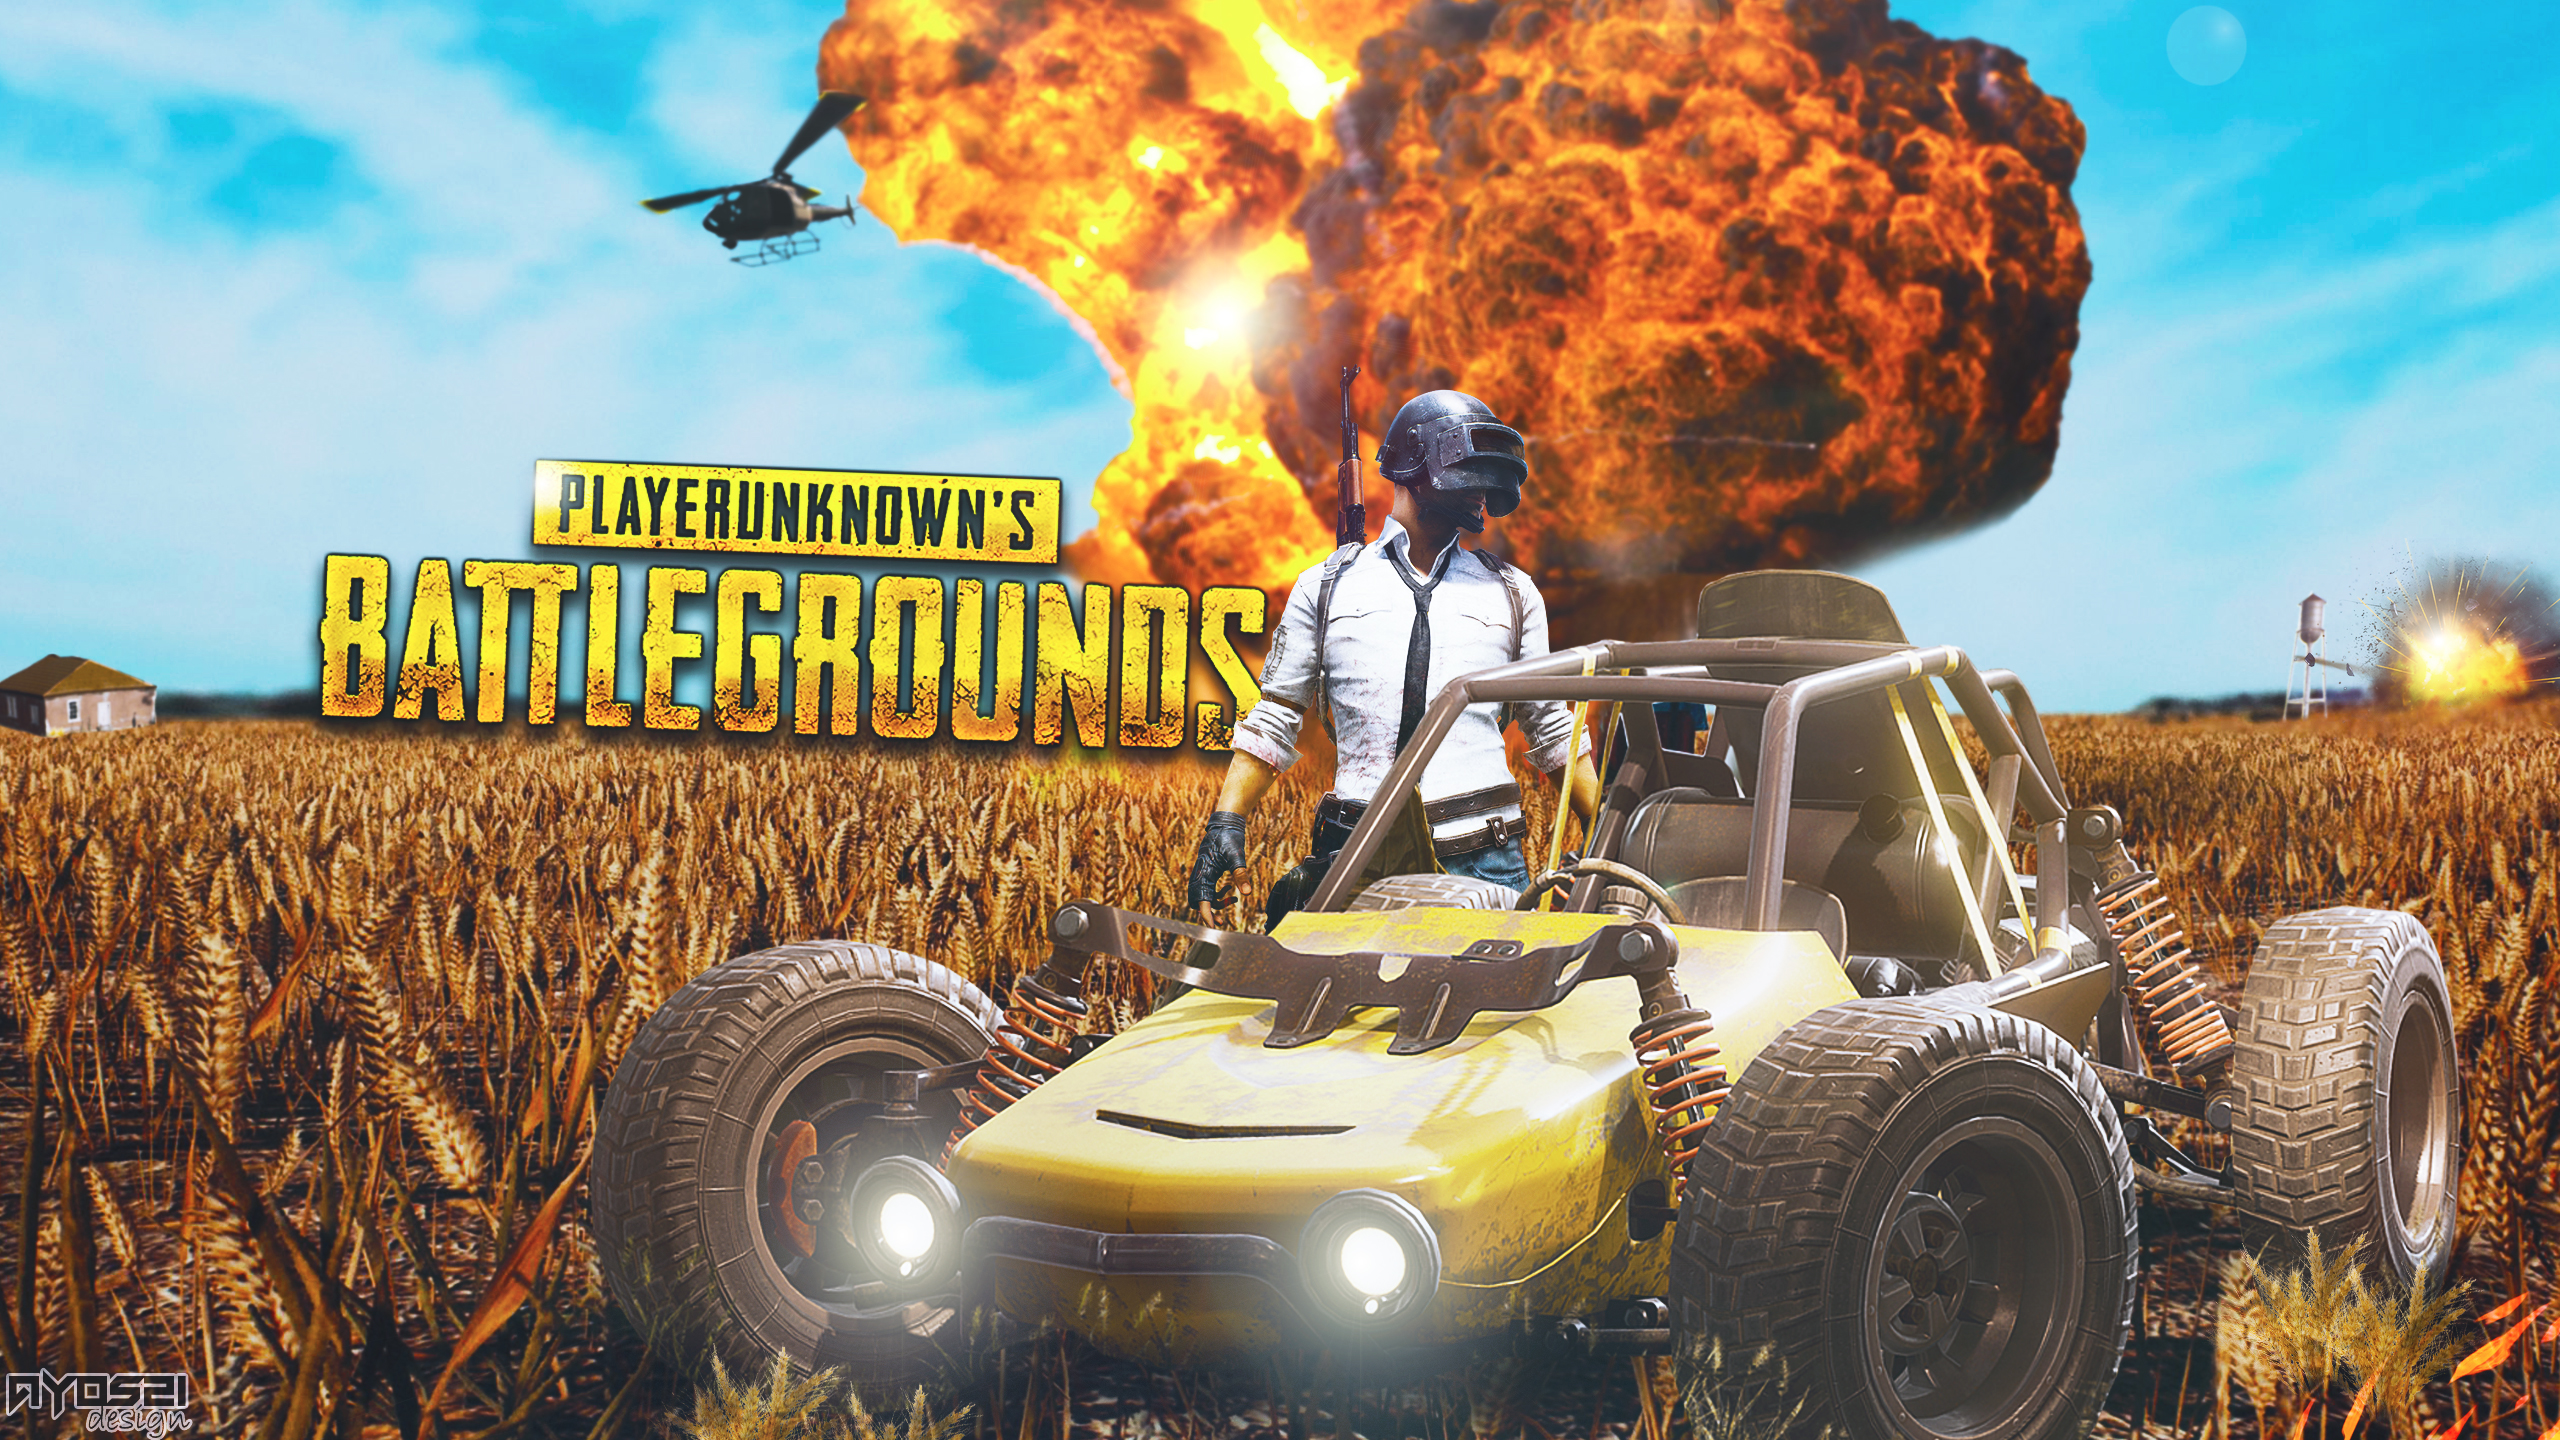 Playerunknown S Battlegrounds Wallpapers: Pubg By Ayos21 On DeviantArt